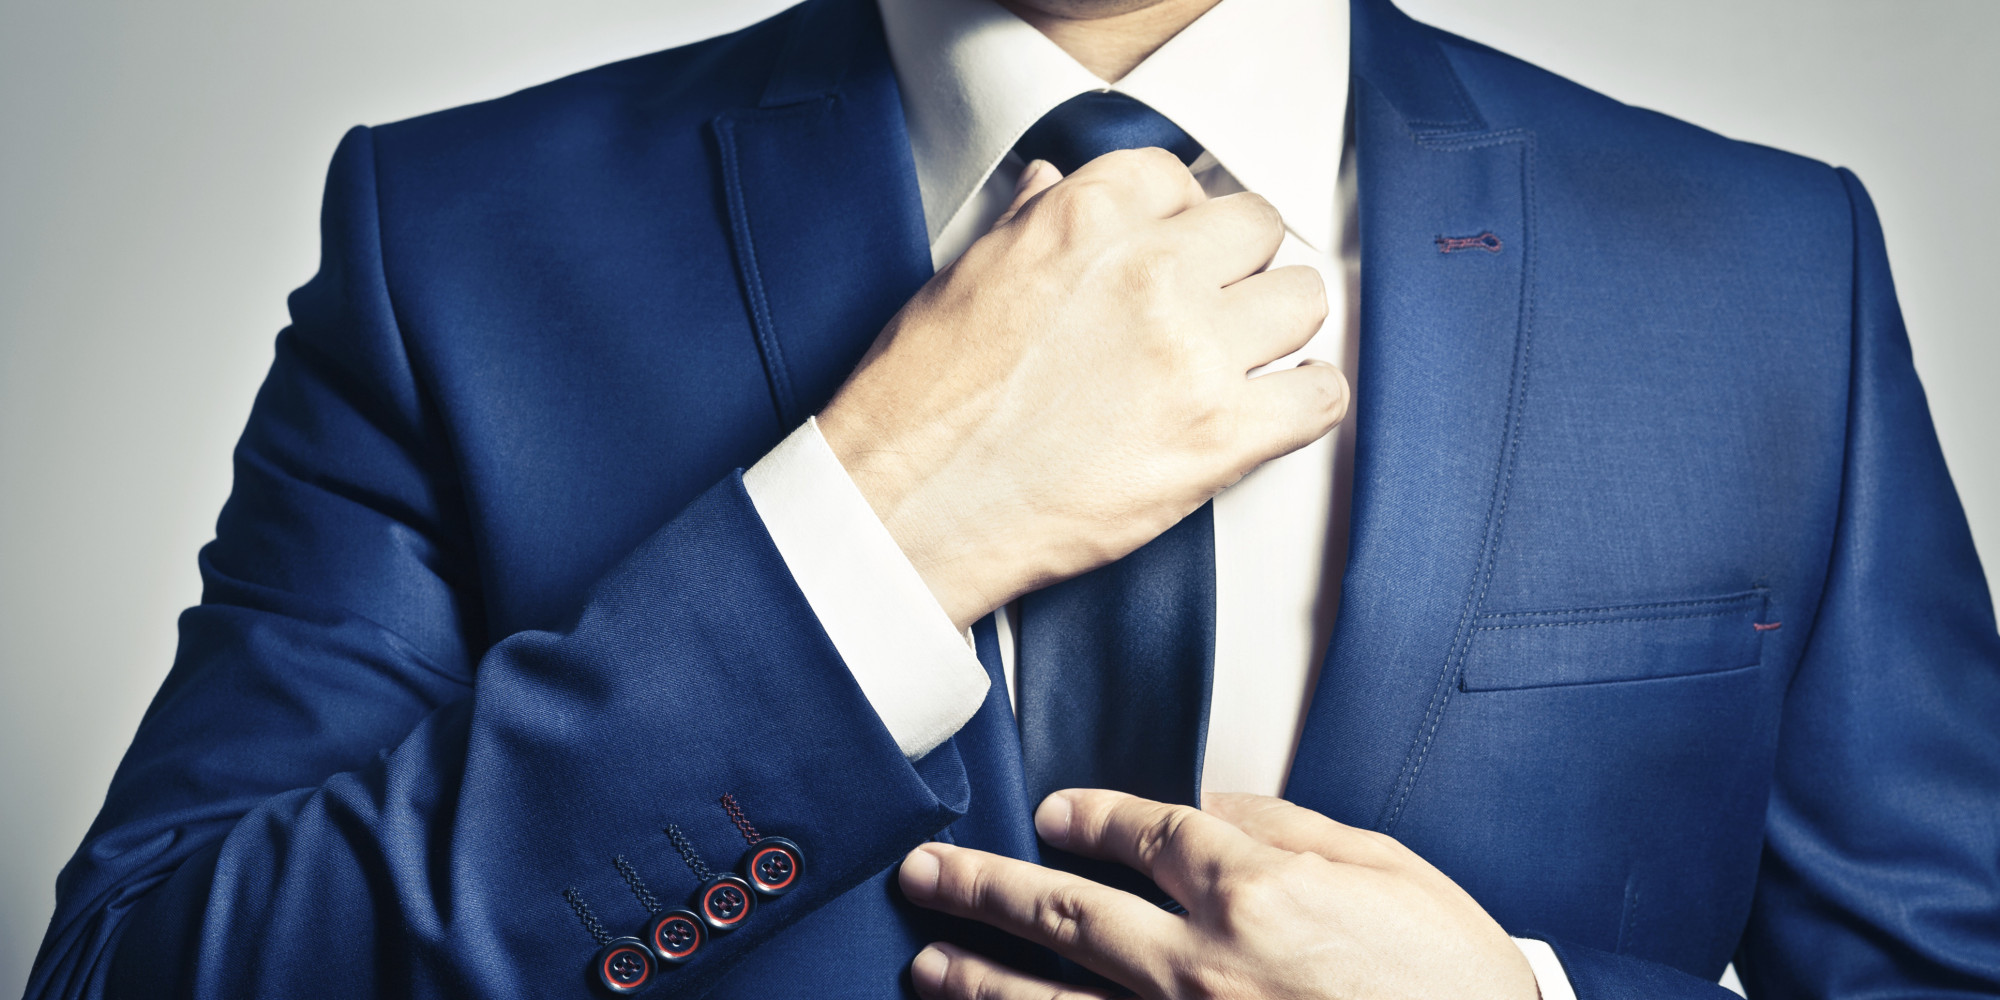 How To Buy A Great Suit In 3 Easy Steps Andrea Traynor